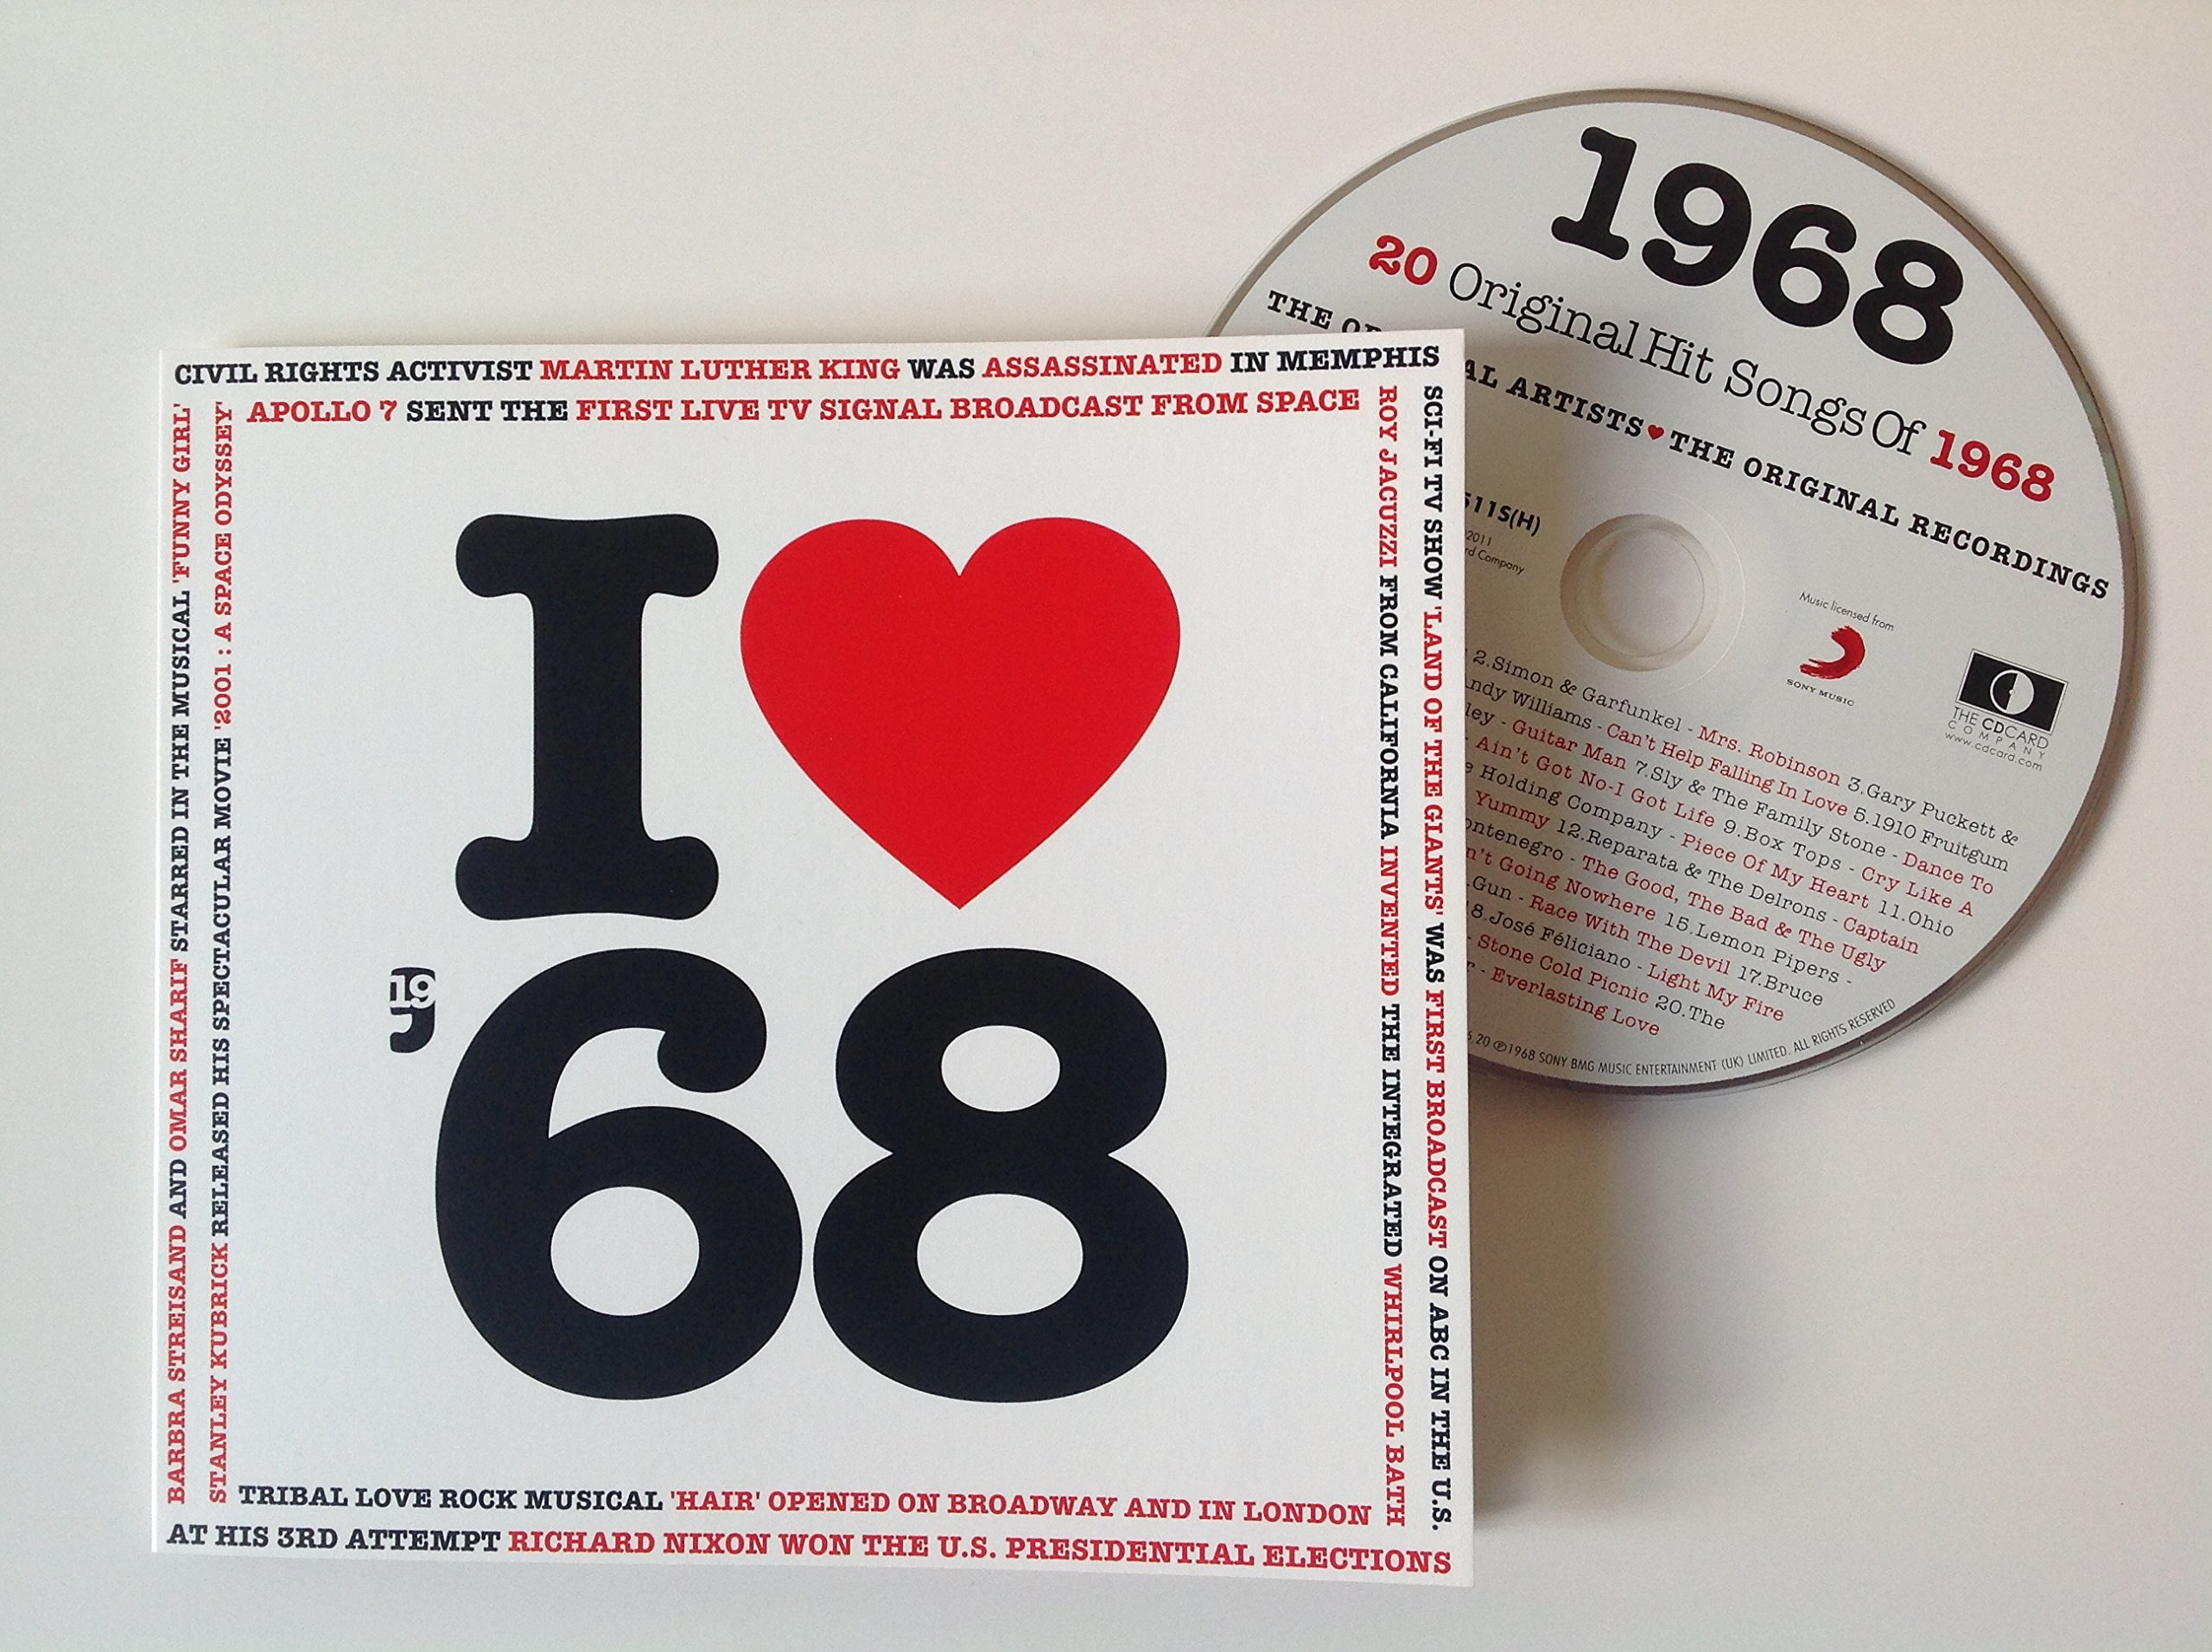 1968 BIRTHDAY or ANNIVERSARY GIFT - I Love 1968 Compilation Music Hits CD - 20 Original Songs - 1968 Year Greeting Card by CD Card Company